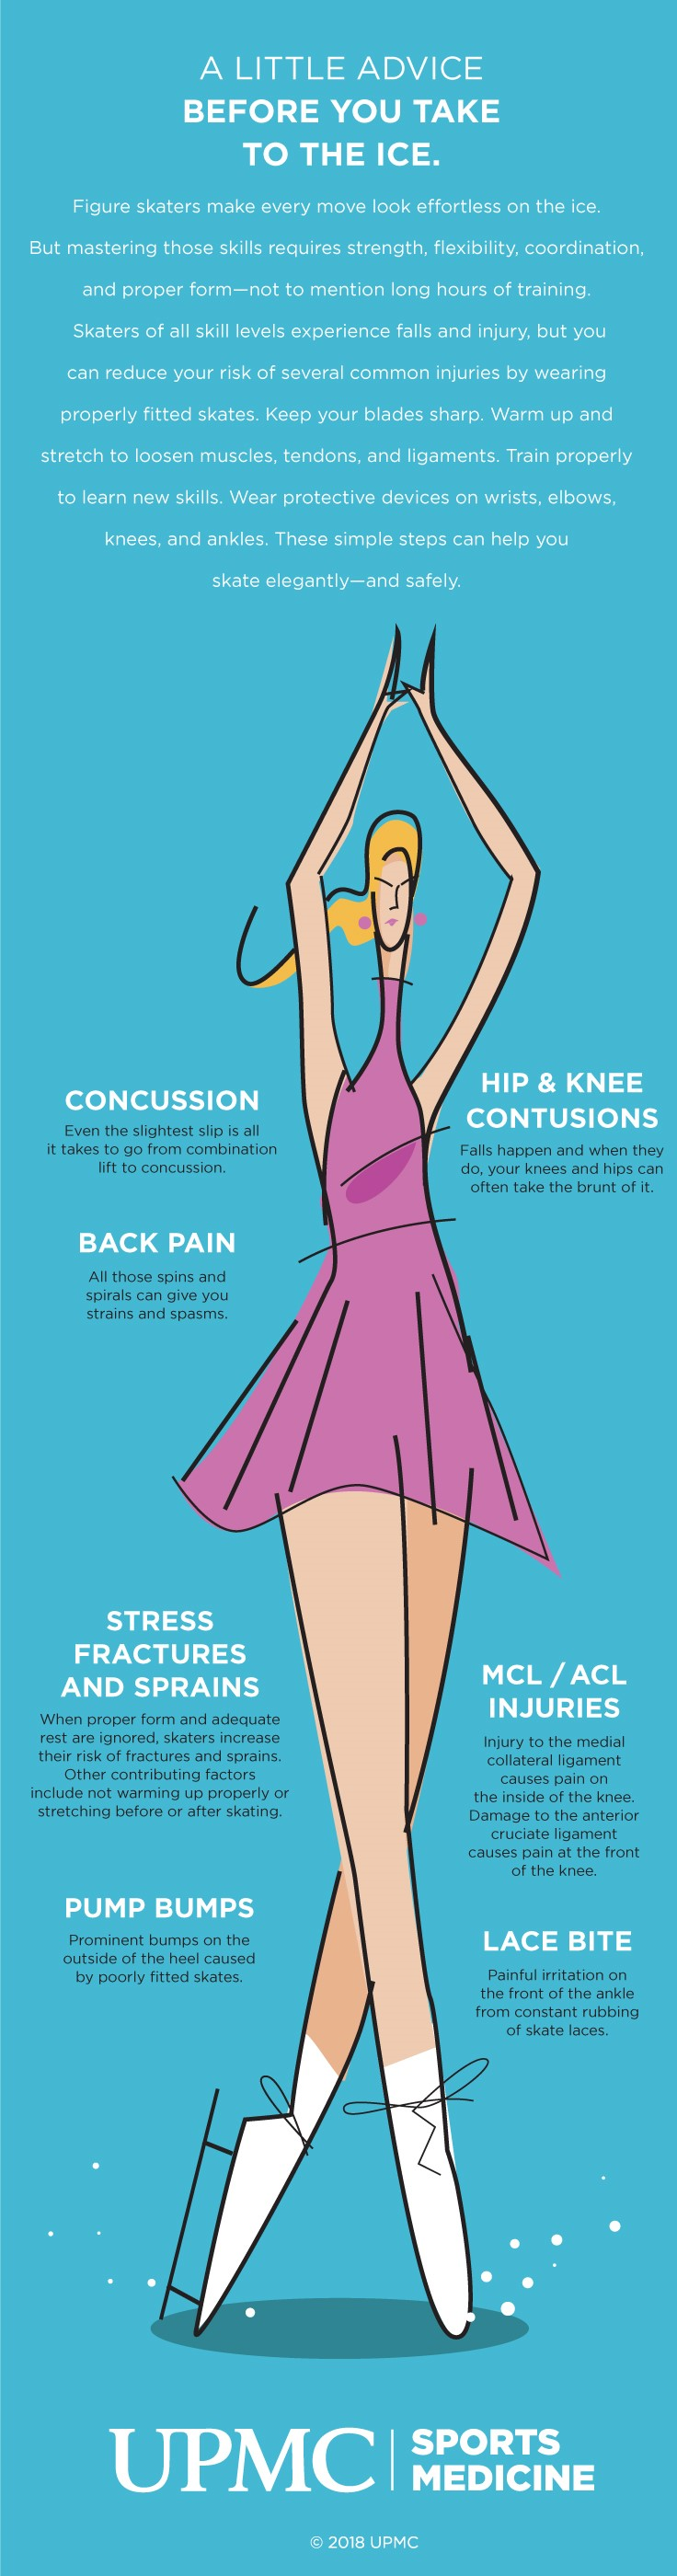 Learn about common injuries in figure skating